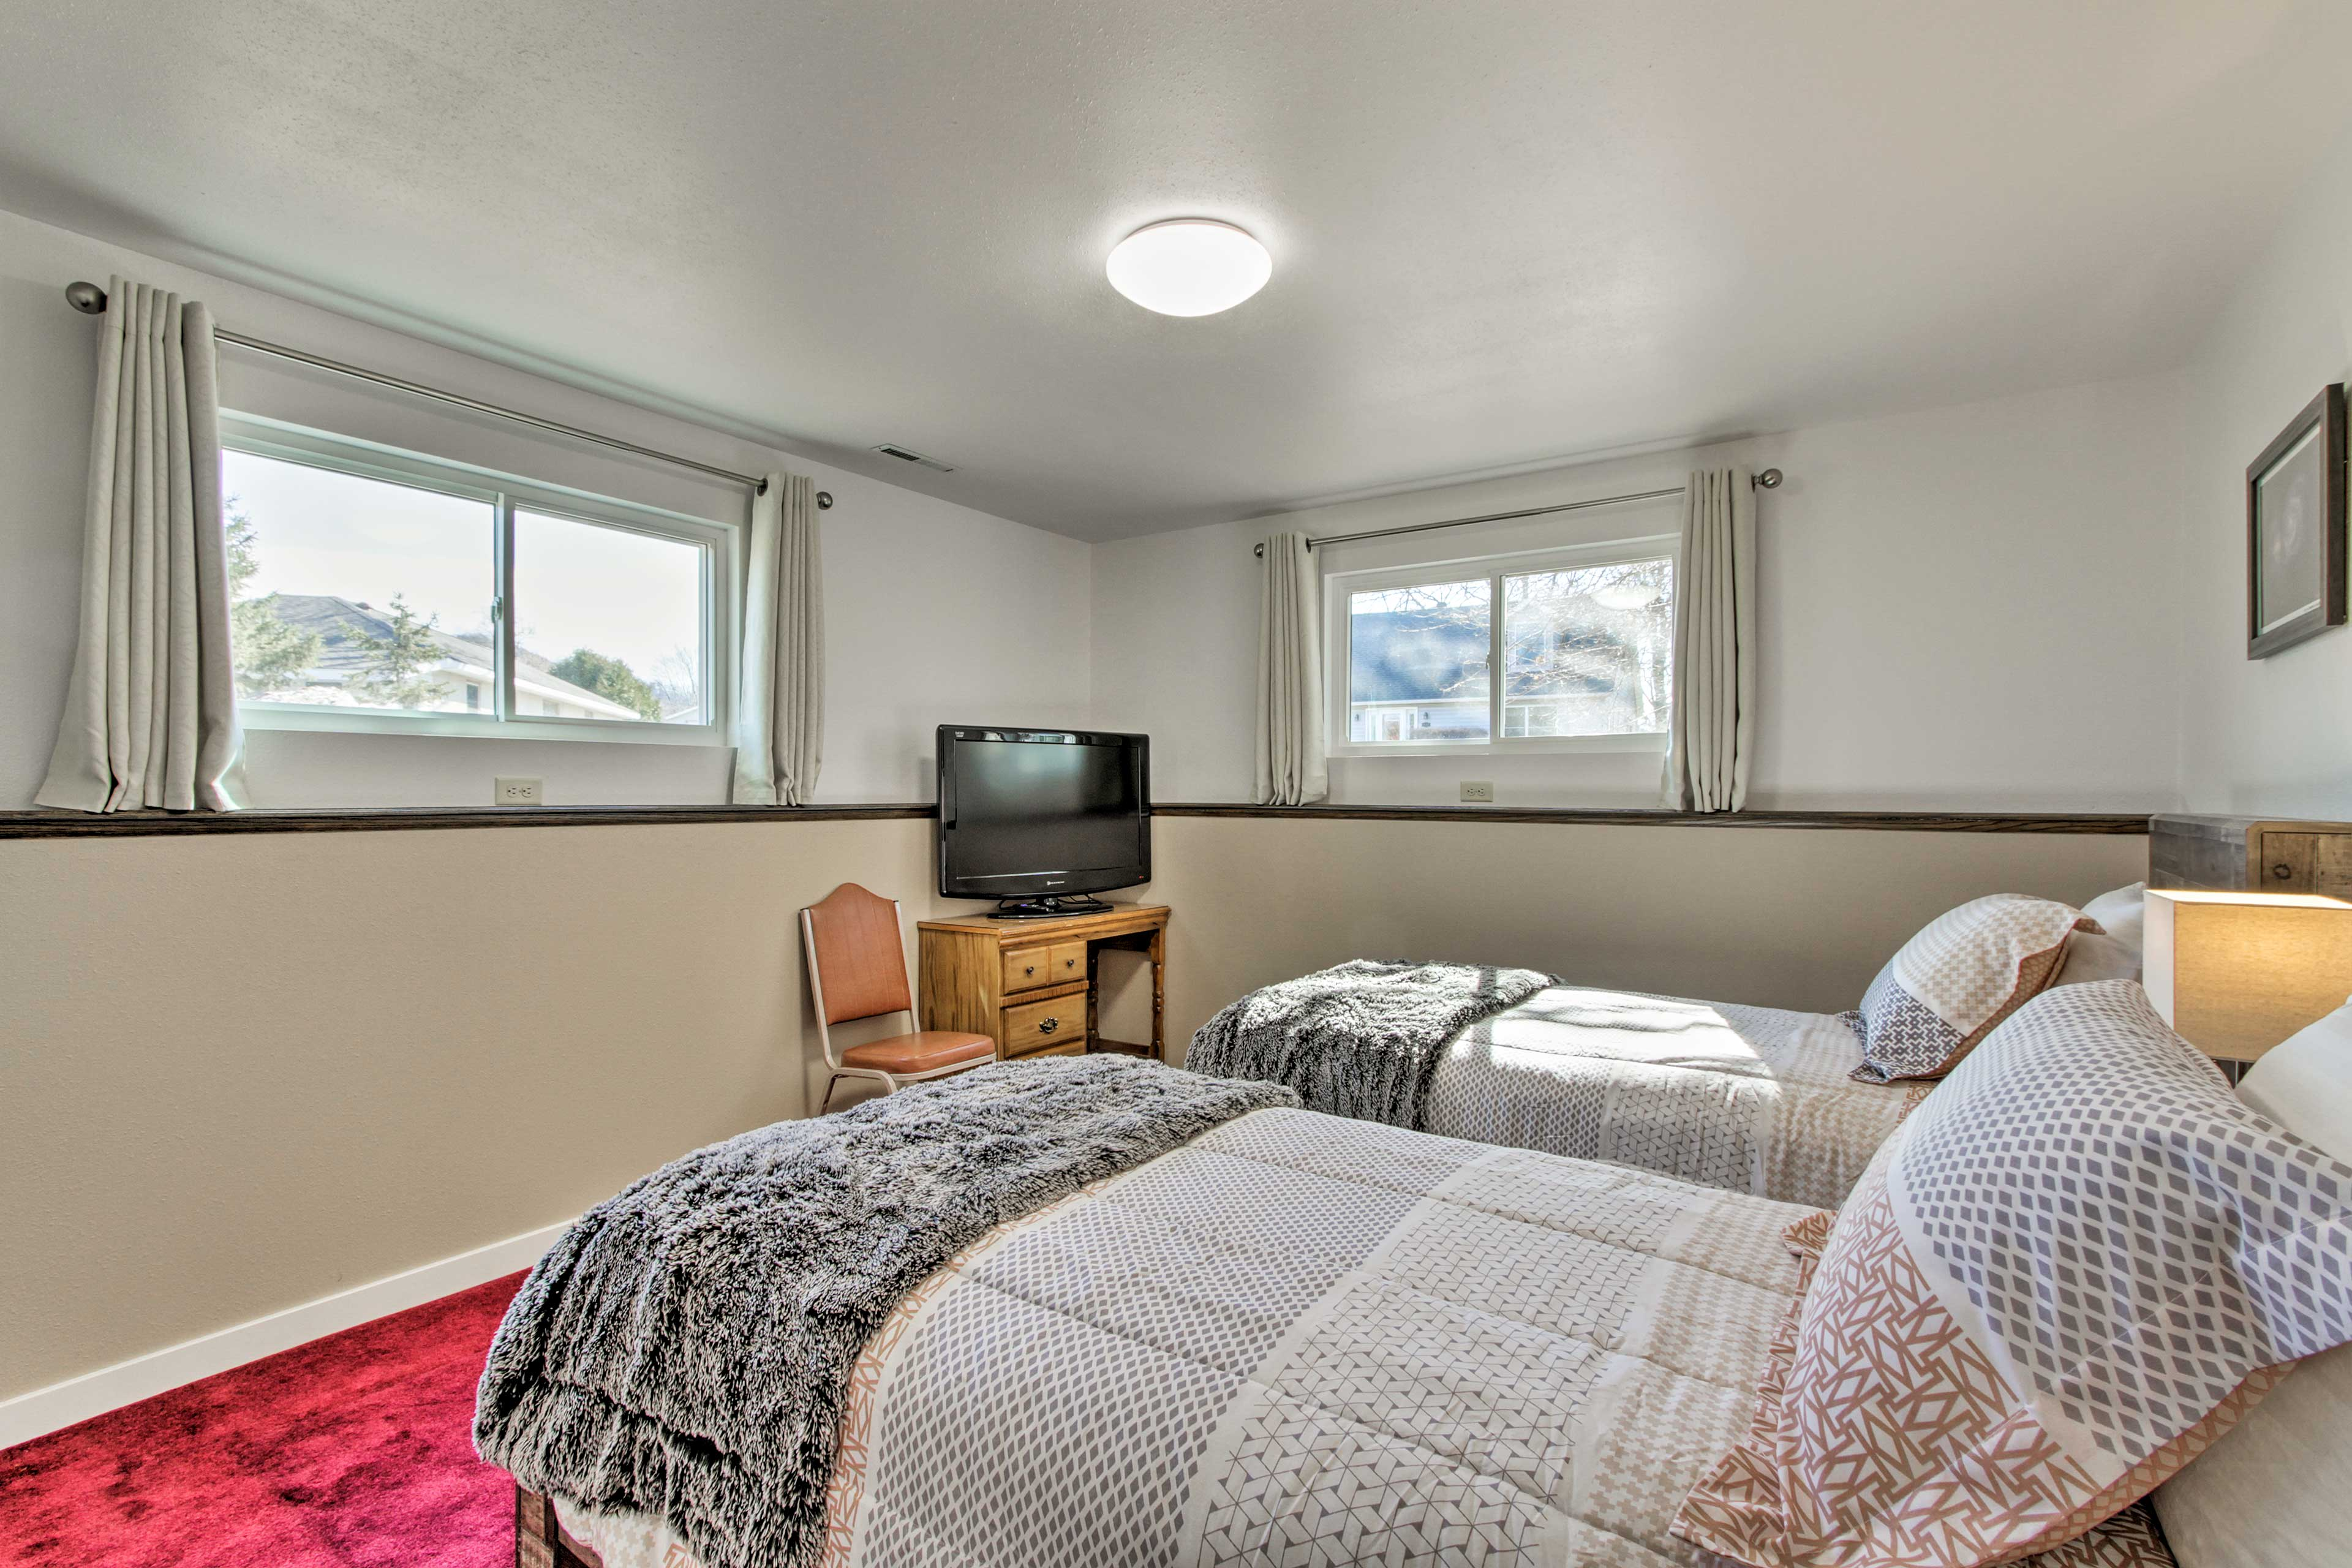 This room includes 2 twin beds - perfect for the kids.